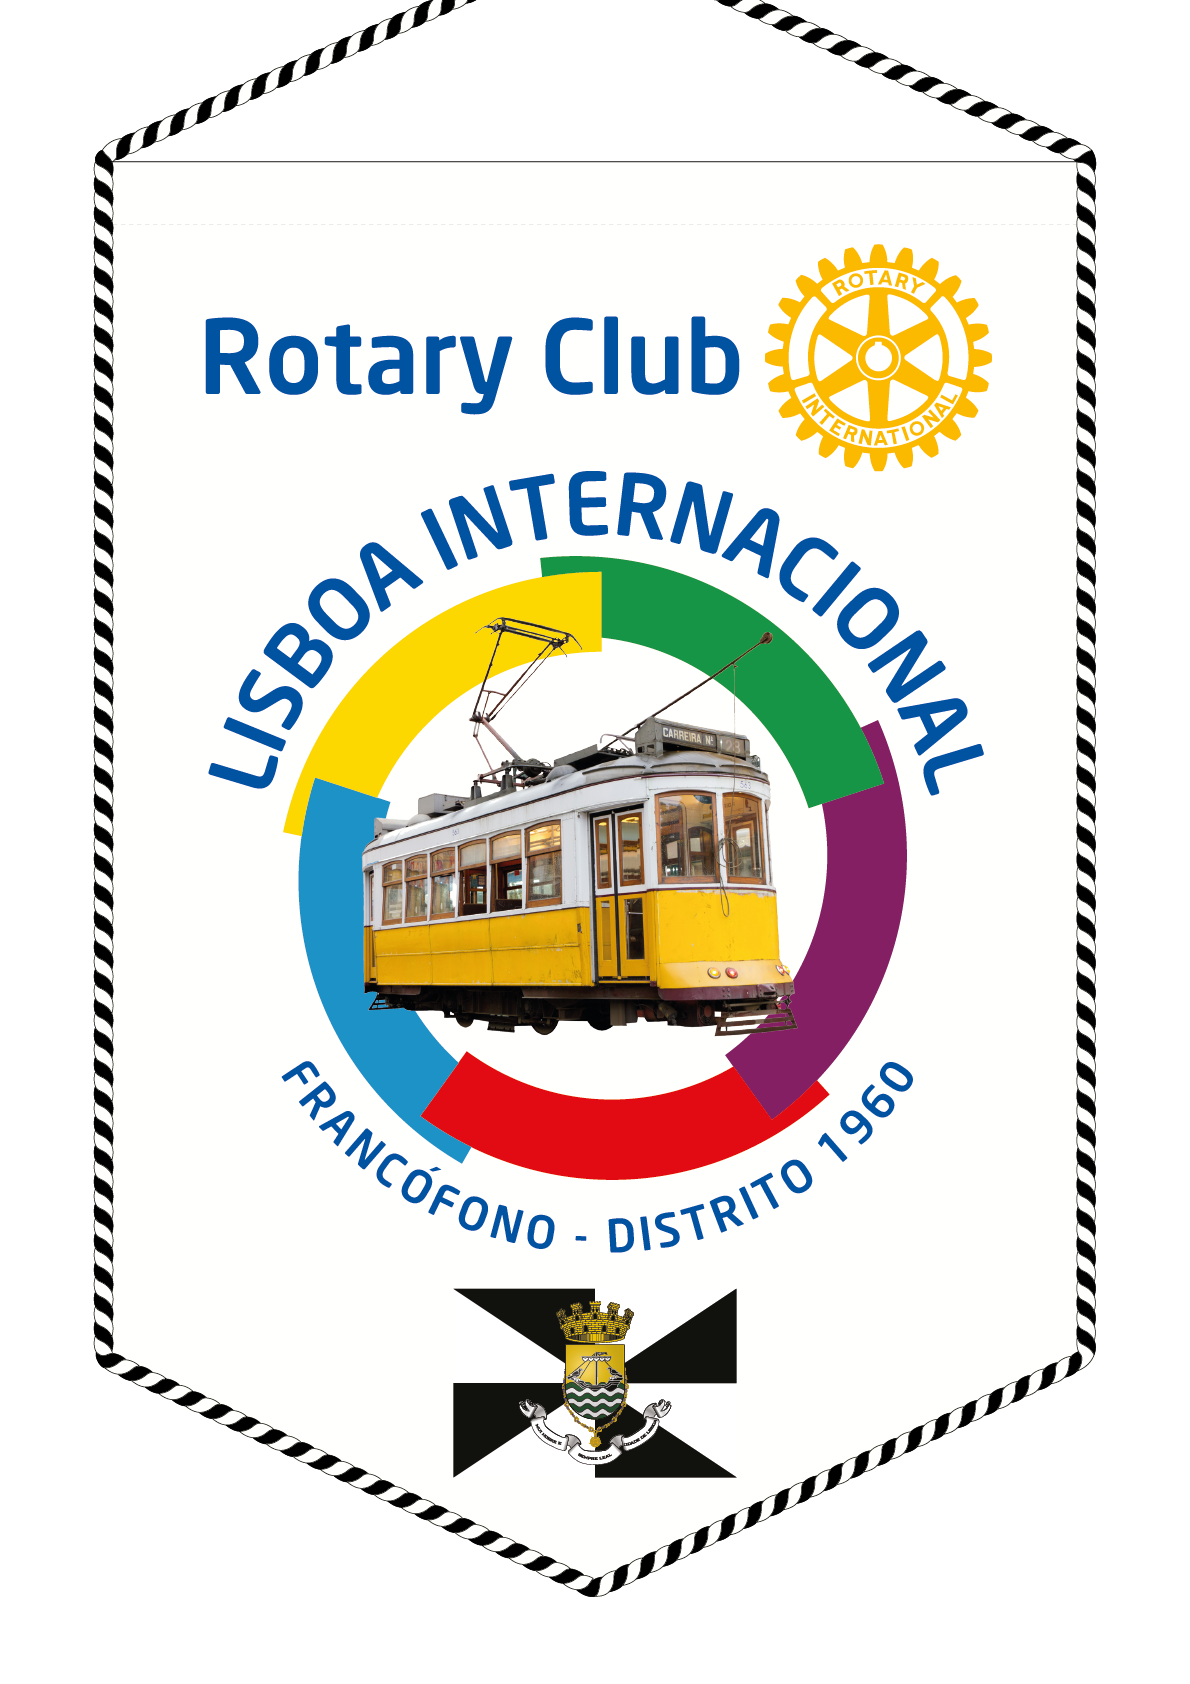 FANION ROTARY CLUB LISBOA INTERNATIONAL